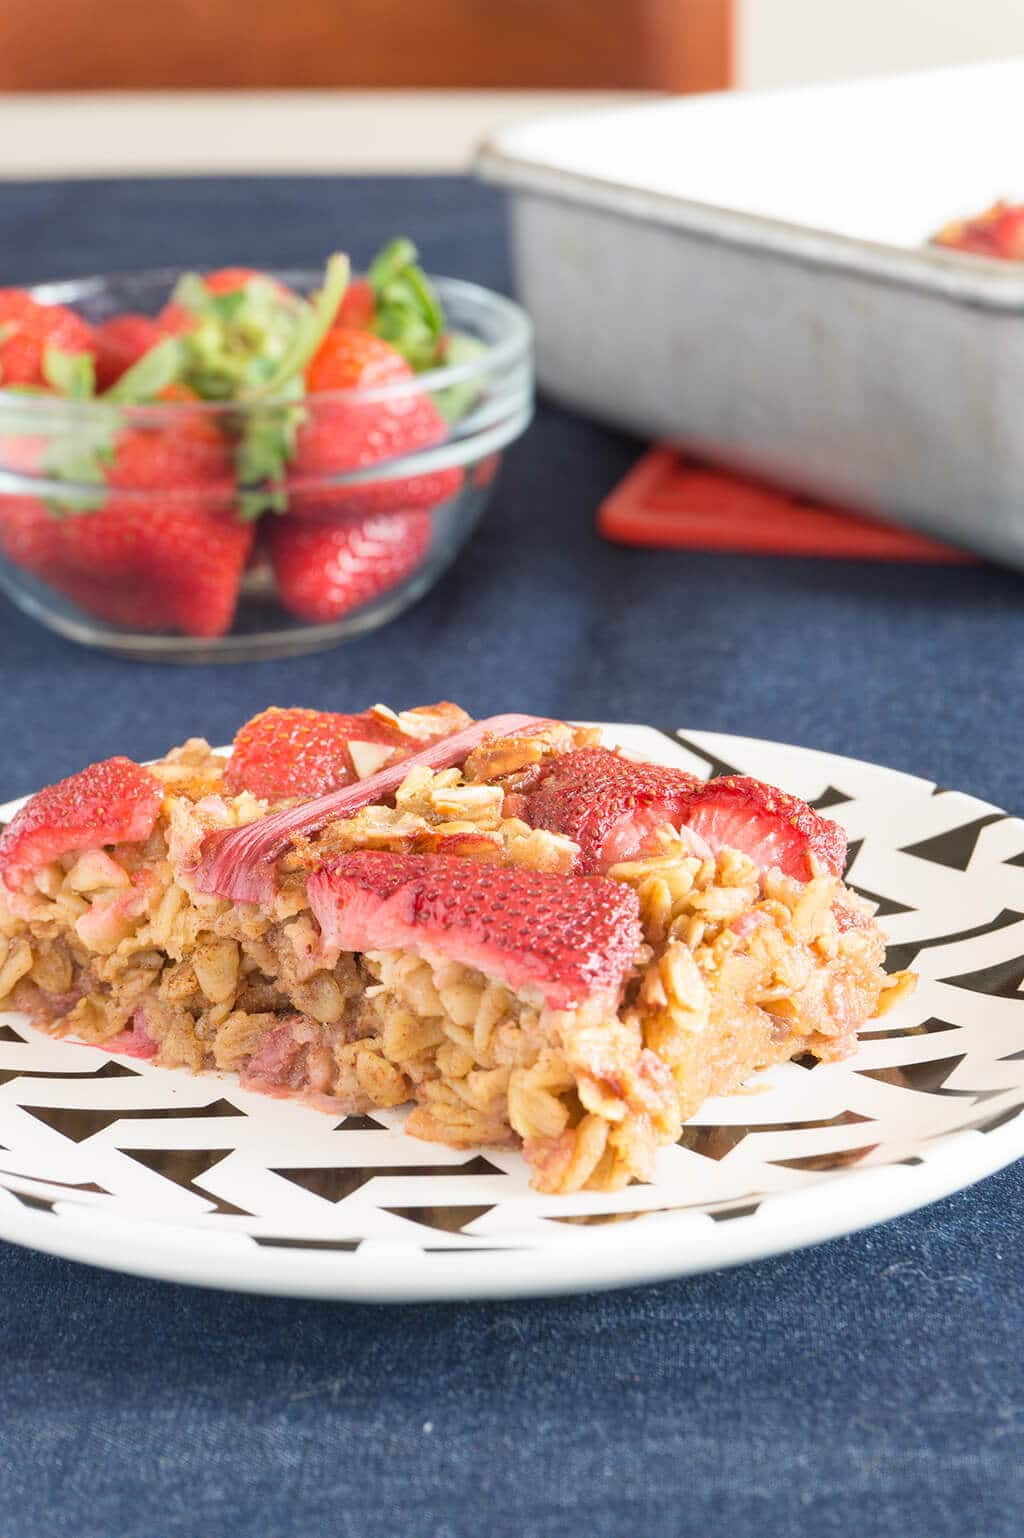 Strawberry Rhubarb Baked Oatmeal close up